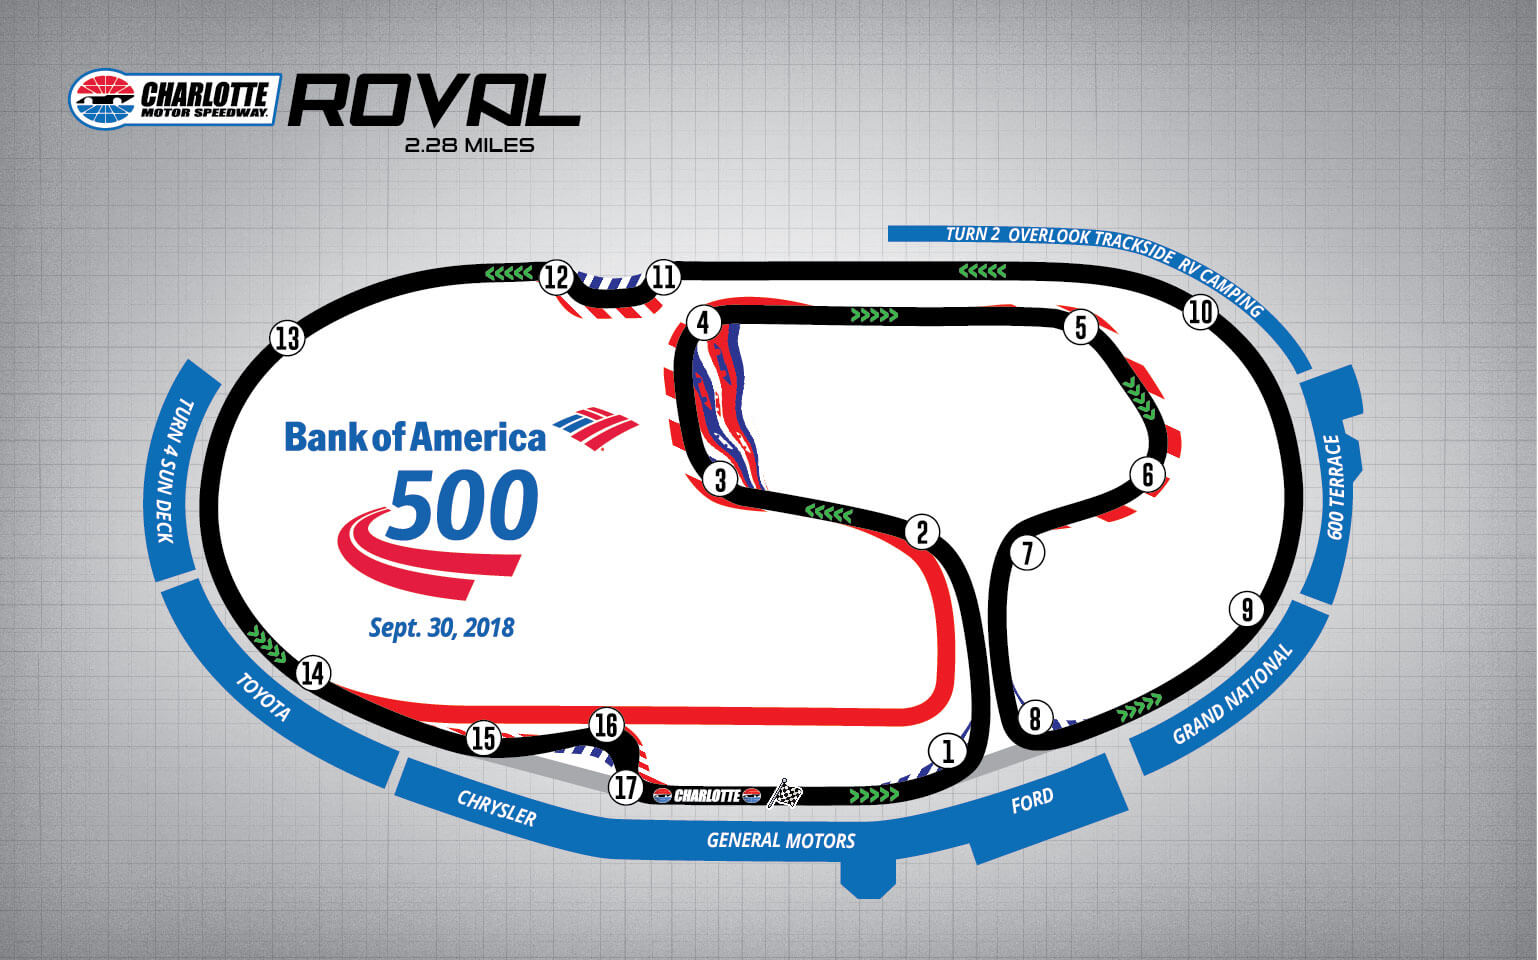 charlotte motor speedway roval